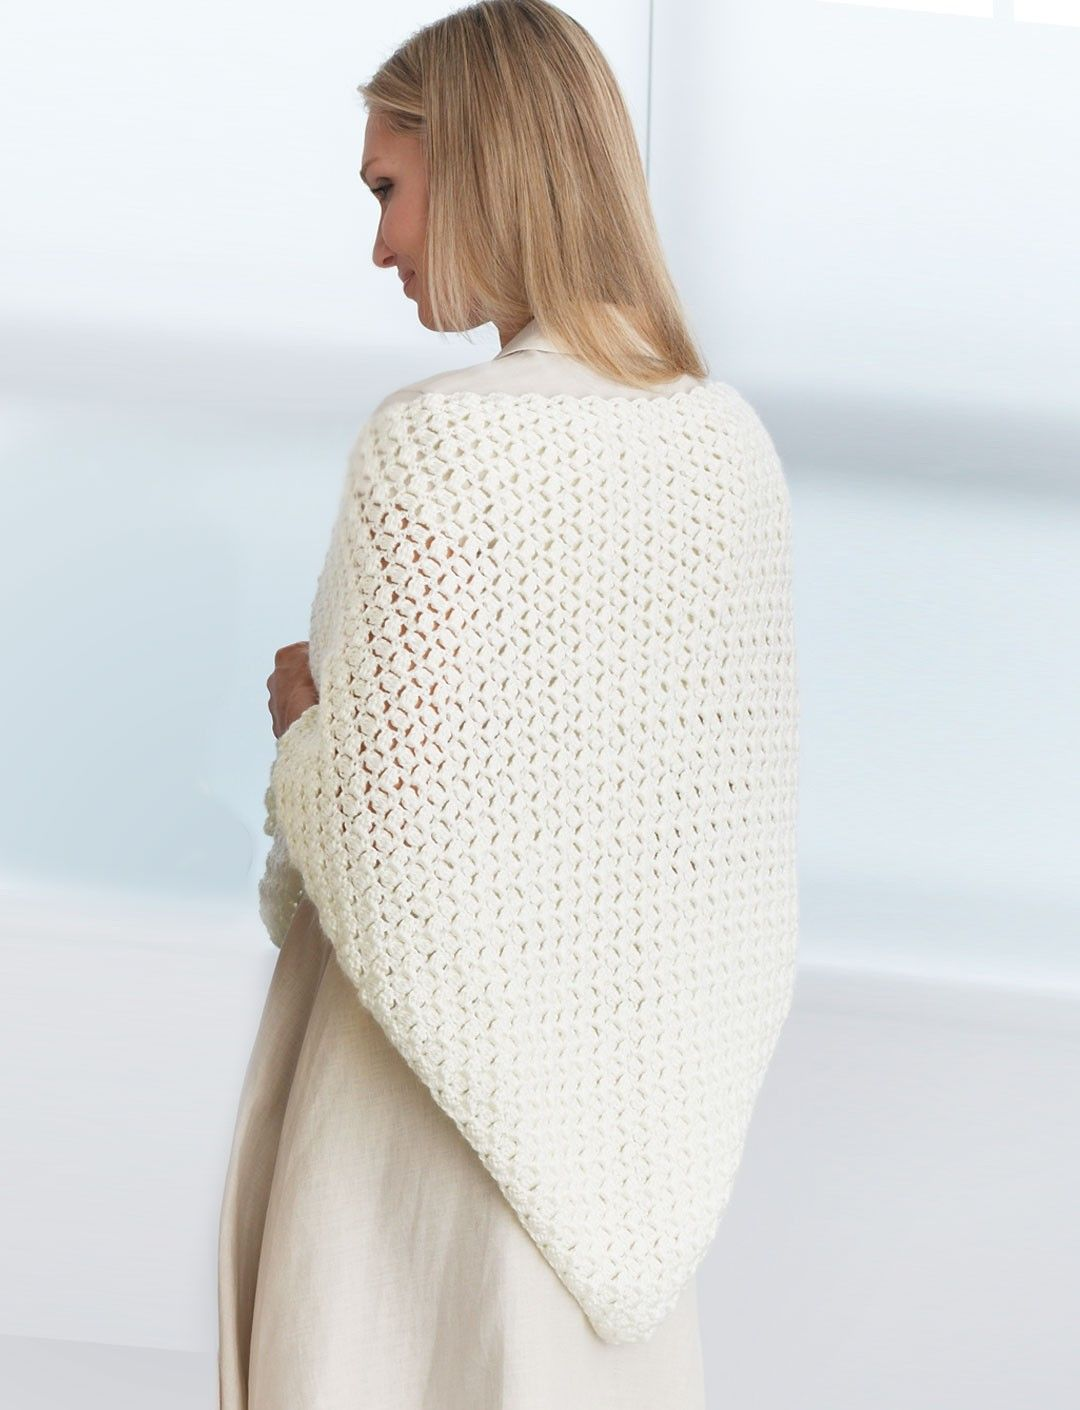 Yarnspirations.com - Bernat Crochet Prayer Shawl | Free Pattern ...